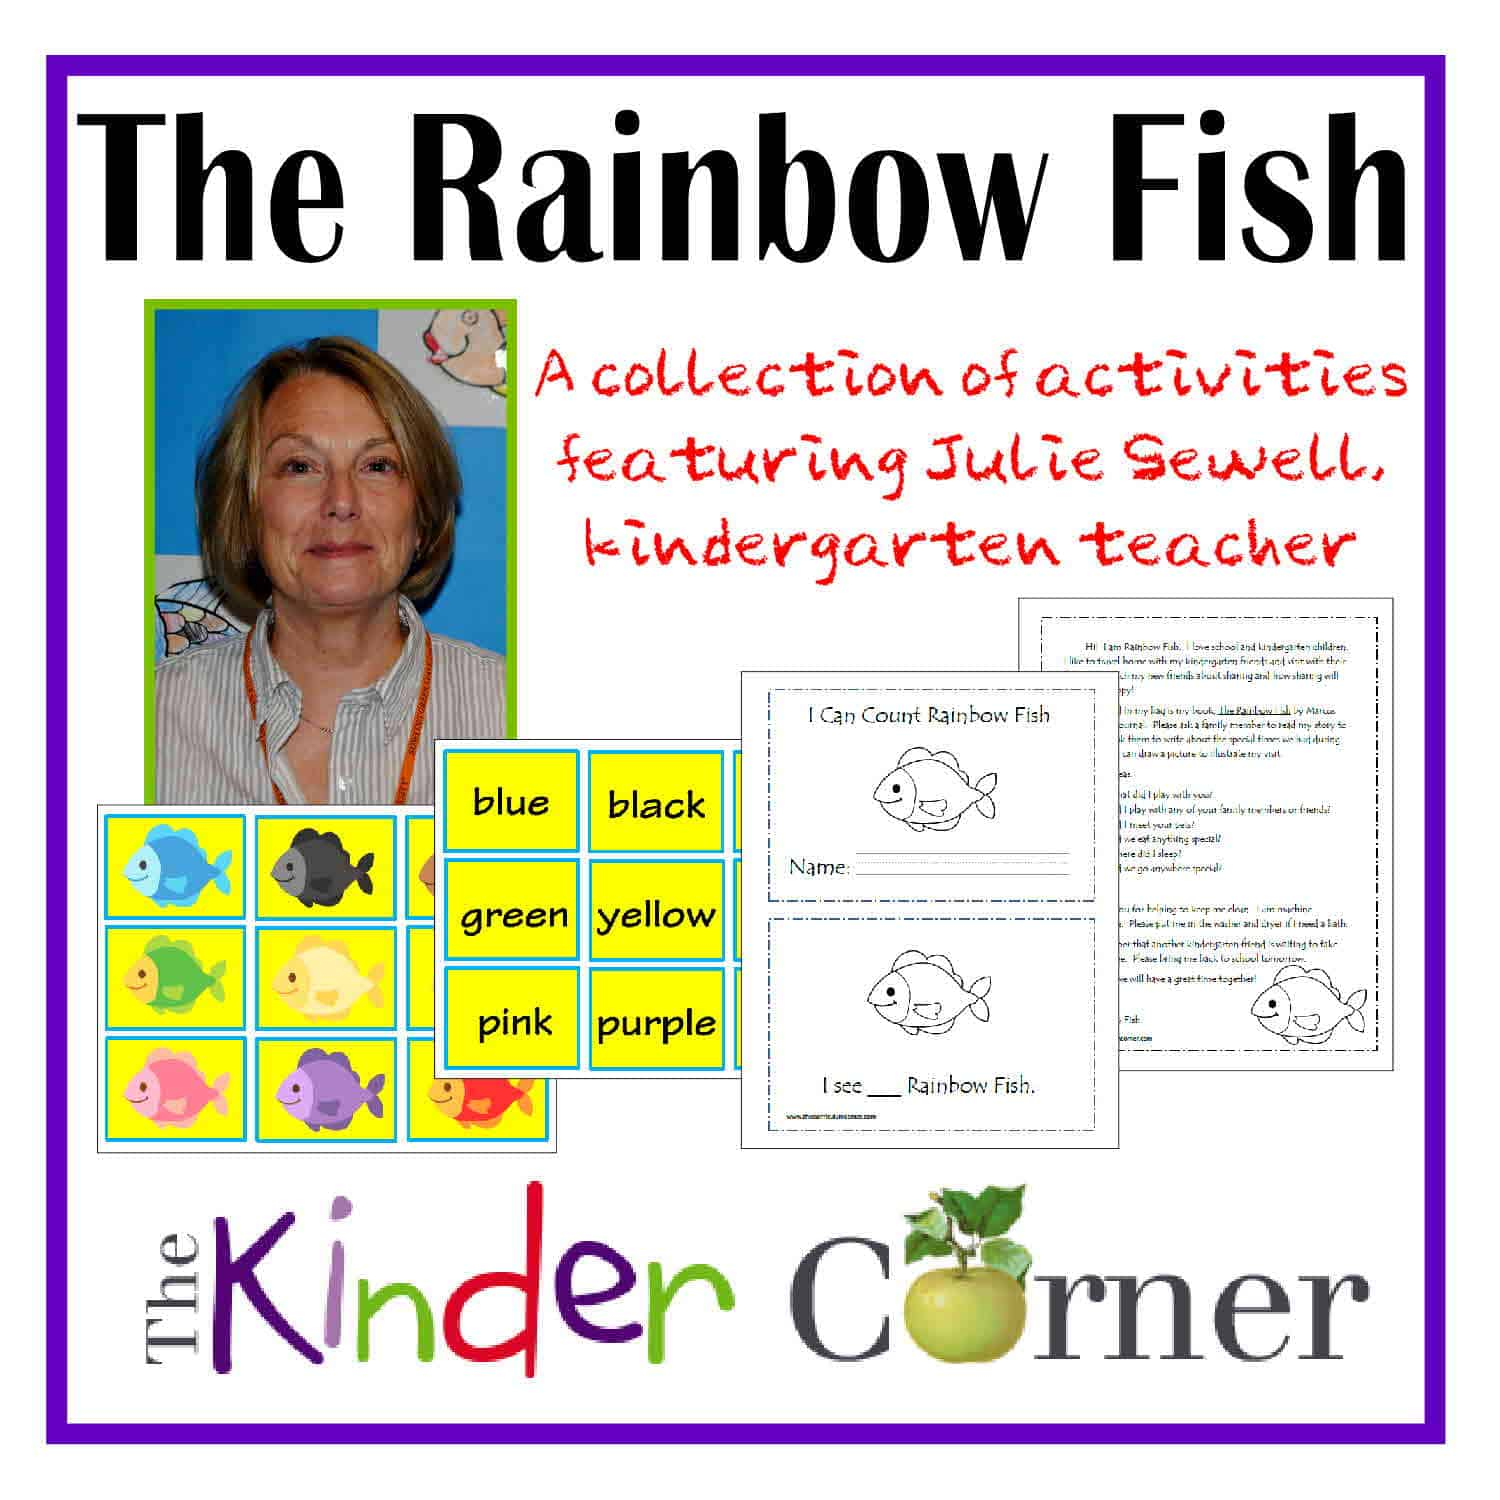 Julie Sewell Uses Rainbow Fish In Her Kindergarten